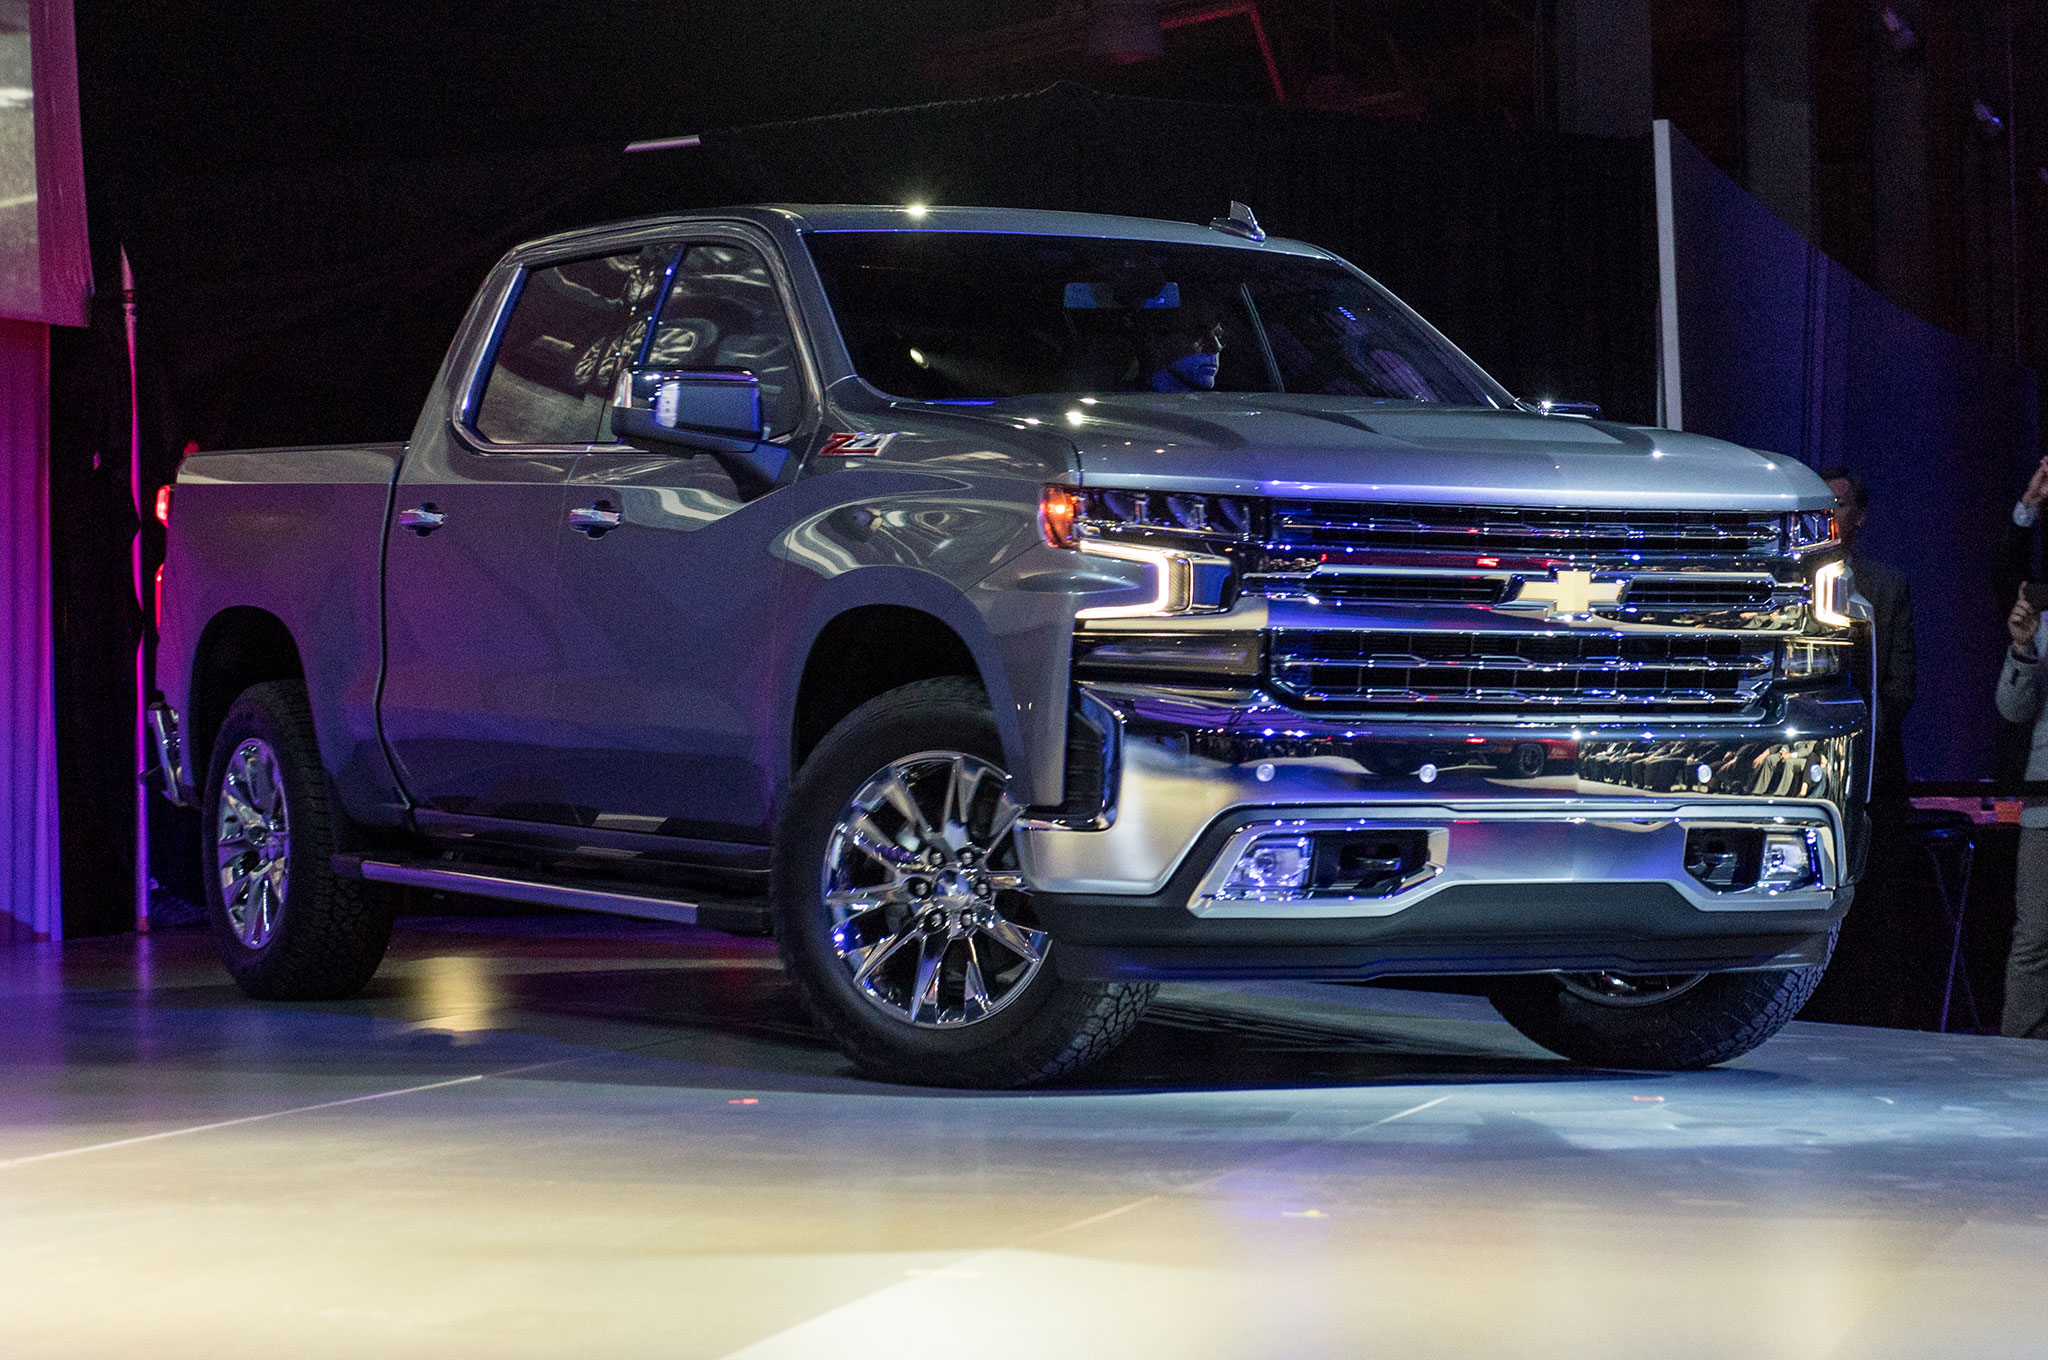 22 New 2019 Chevy Silverado Hd Release Date